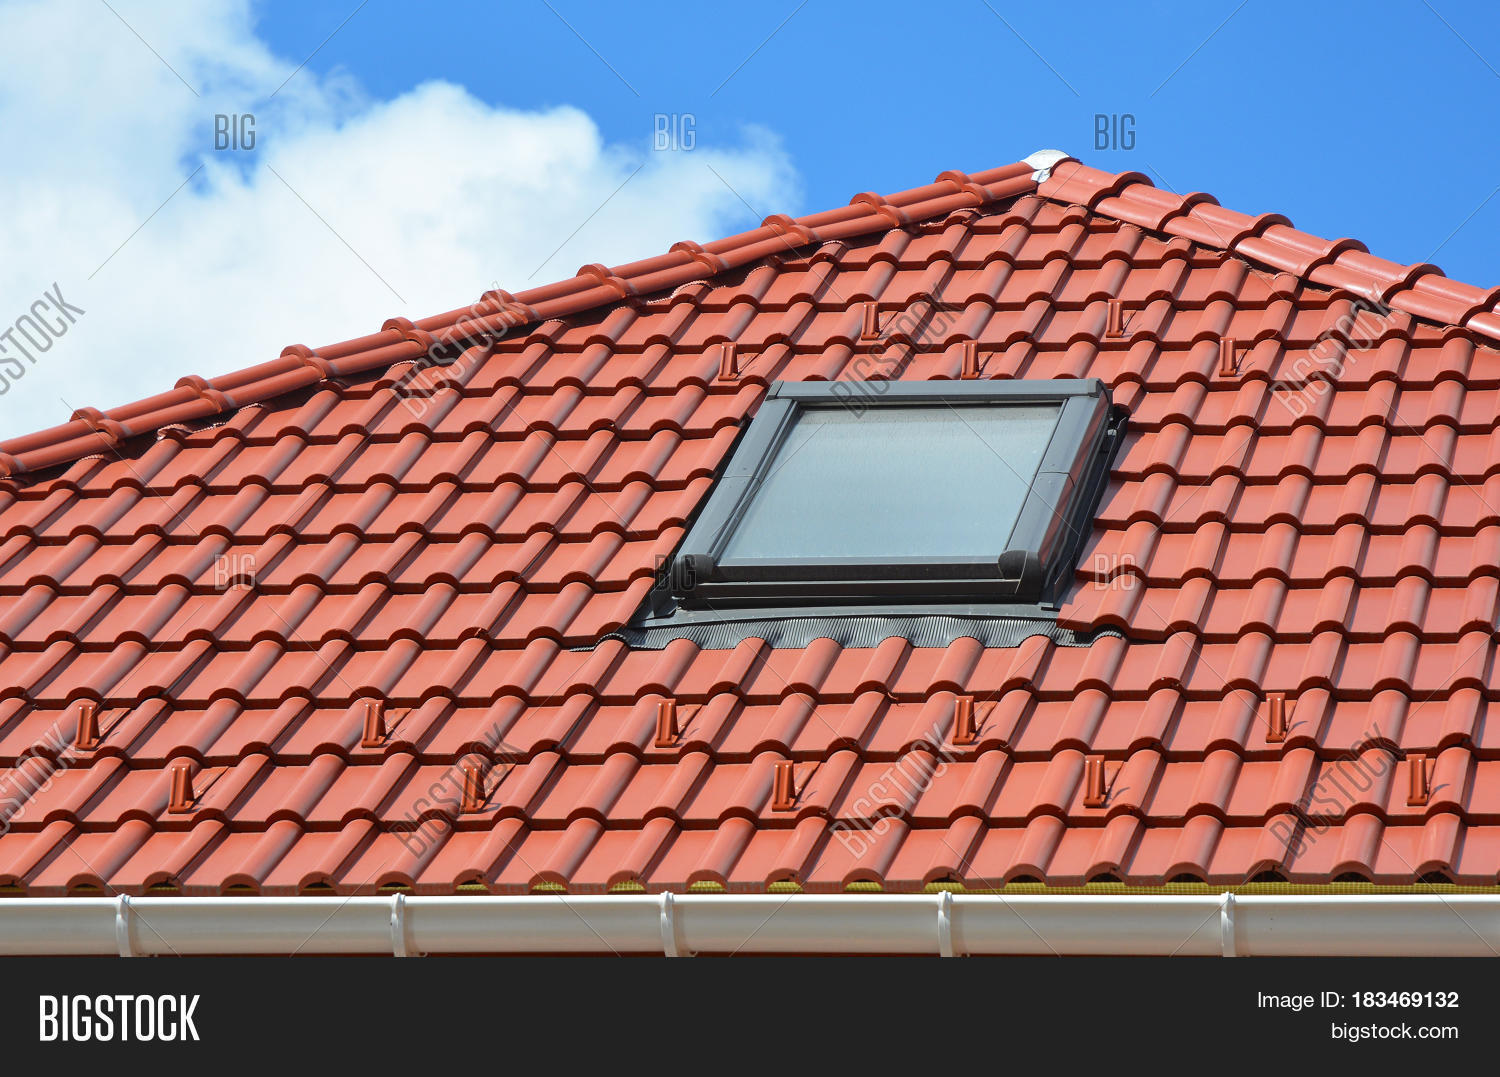 Skylight on red ceramic roof tiles image photo bigstock skylight on red ceramic roof tiles house roof modern roof skylight attic skylights home dailygadgetfo Images